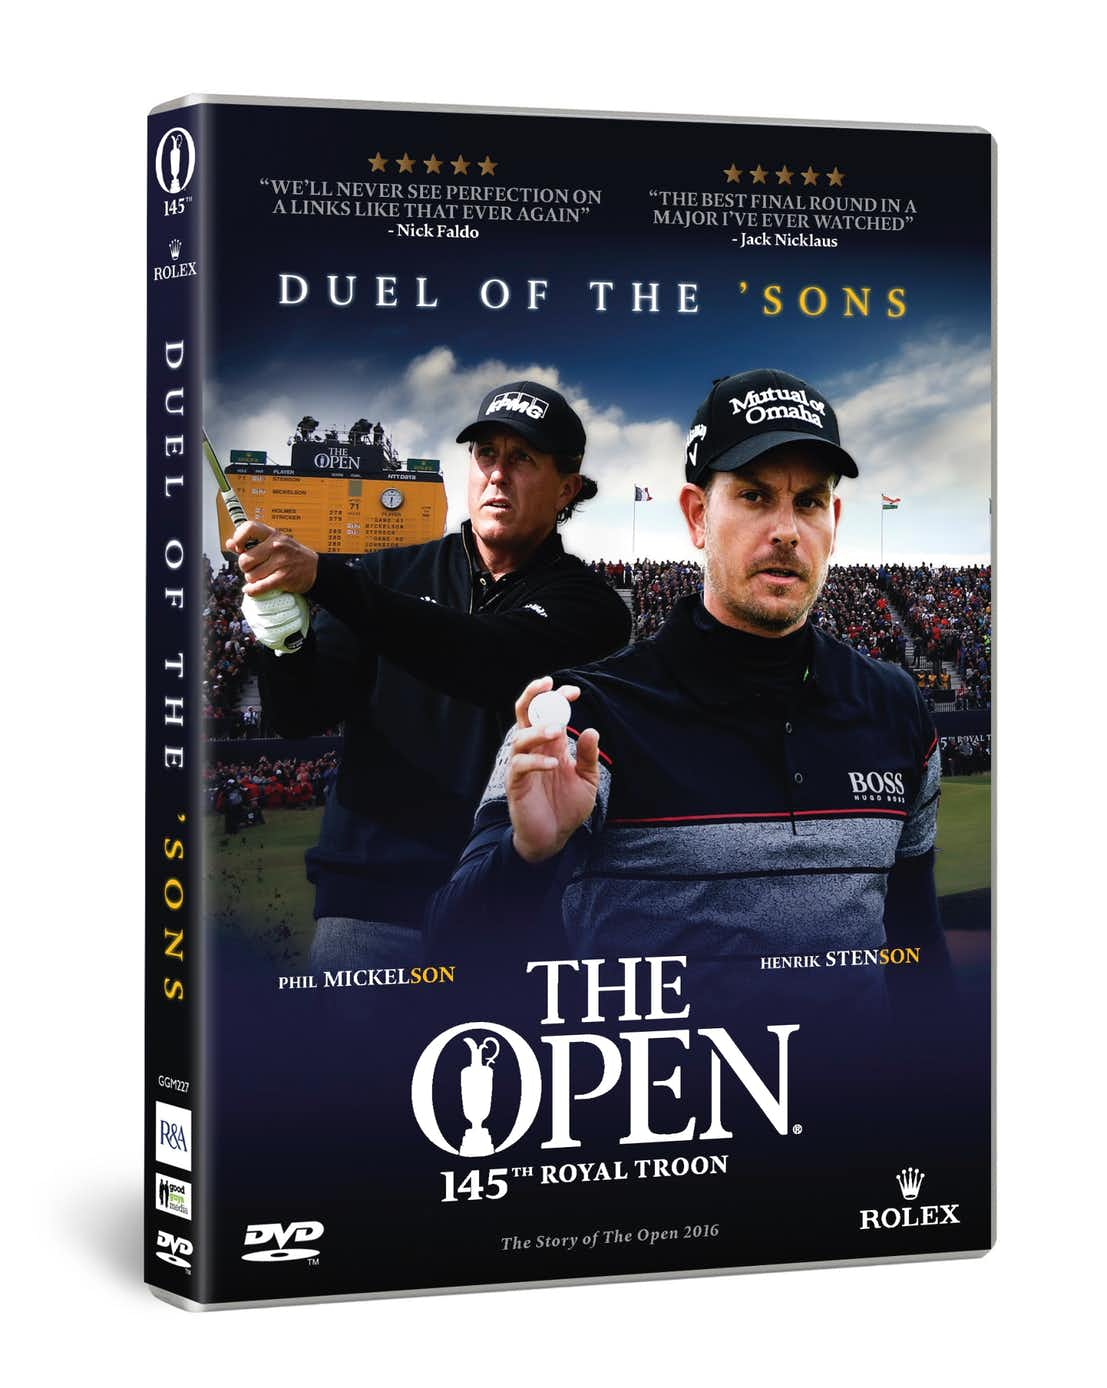 145th Royal Troon Duel of the 'Sons DVD